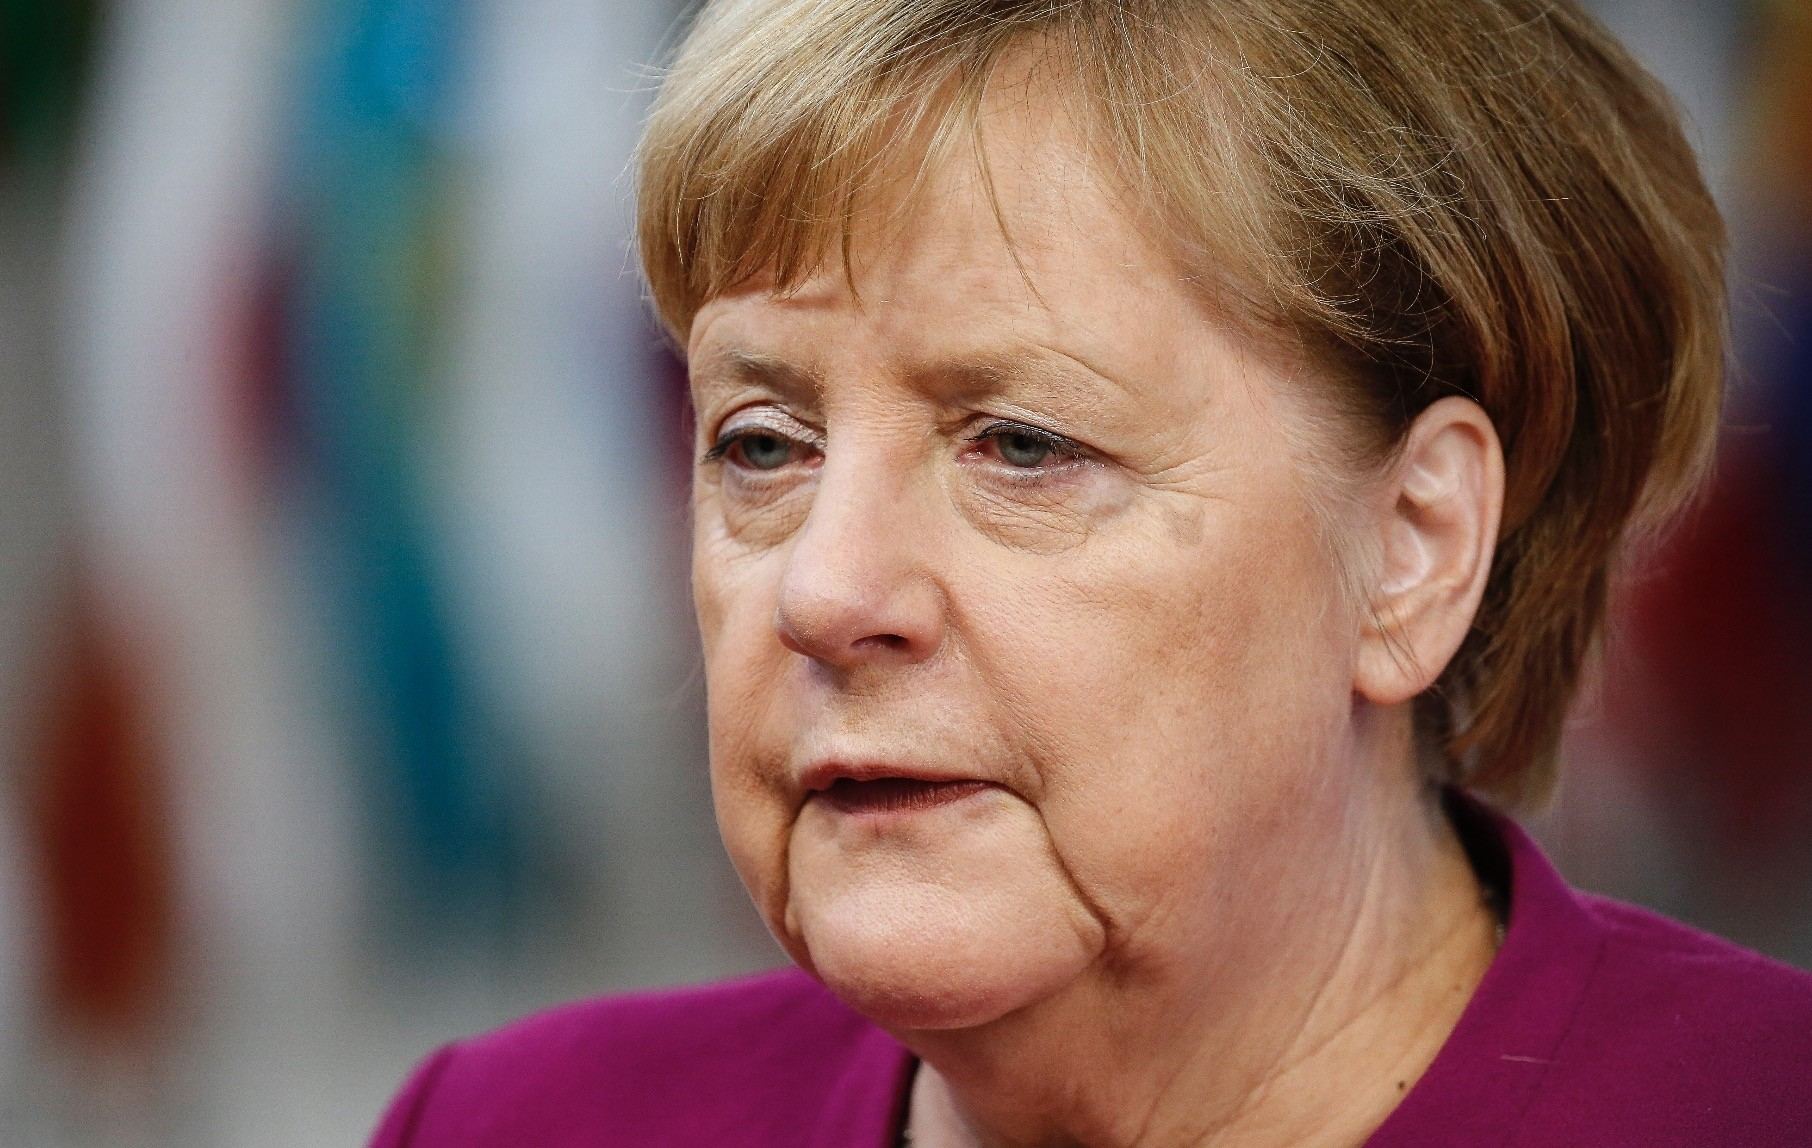 Having  been in office since 2005, German Chancellor Angela Merkelu2019s leadership has come close to collapsing several times.